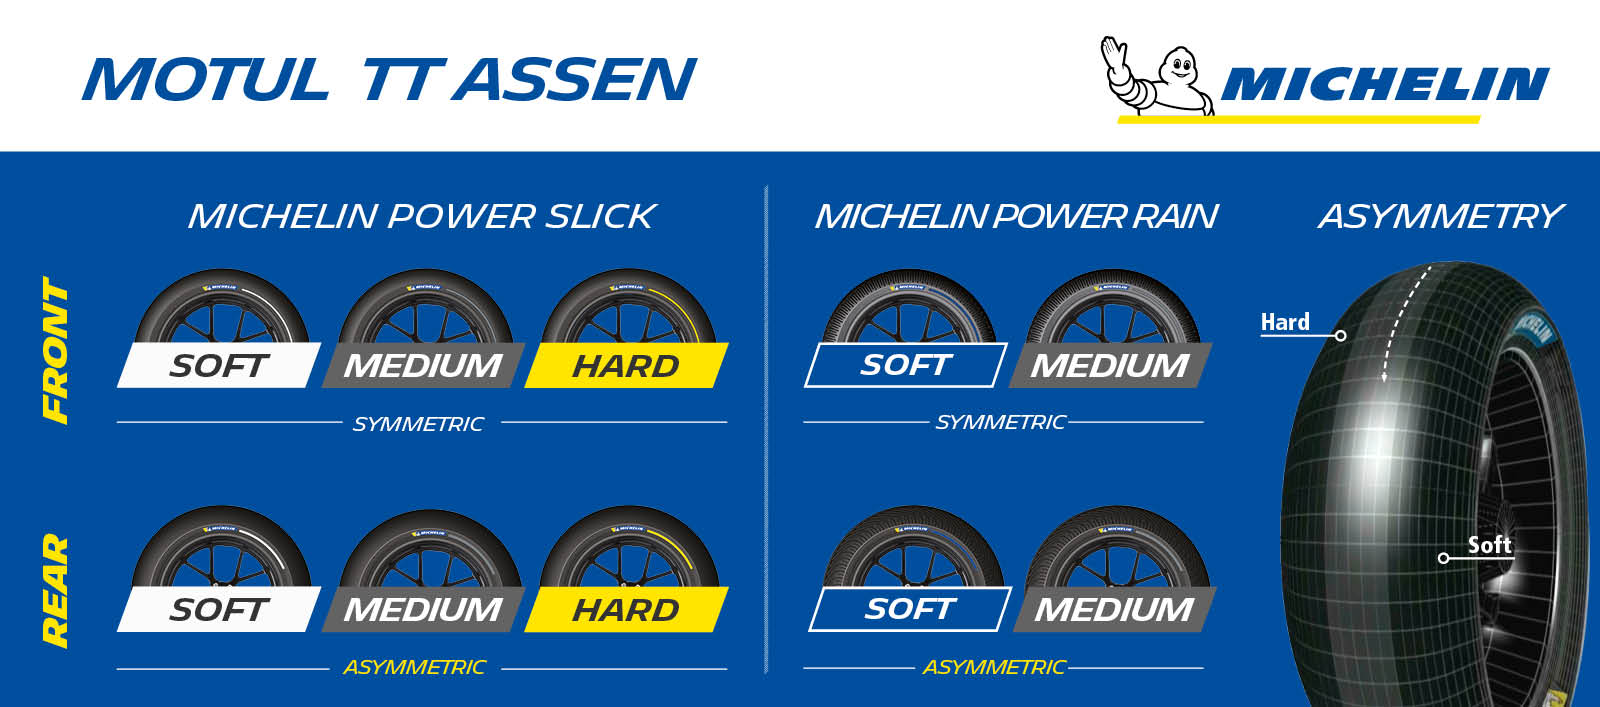 Michelin_TTAssen_TyreAllocation